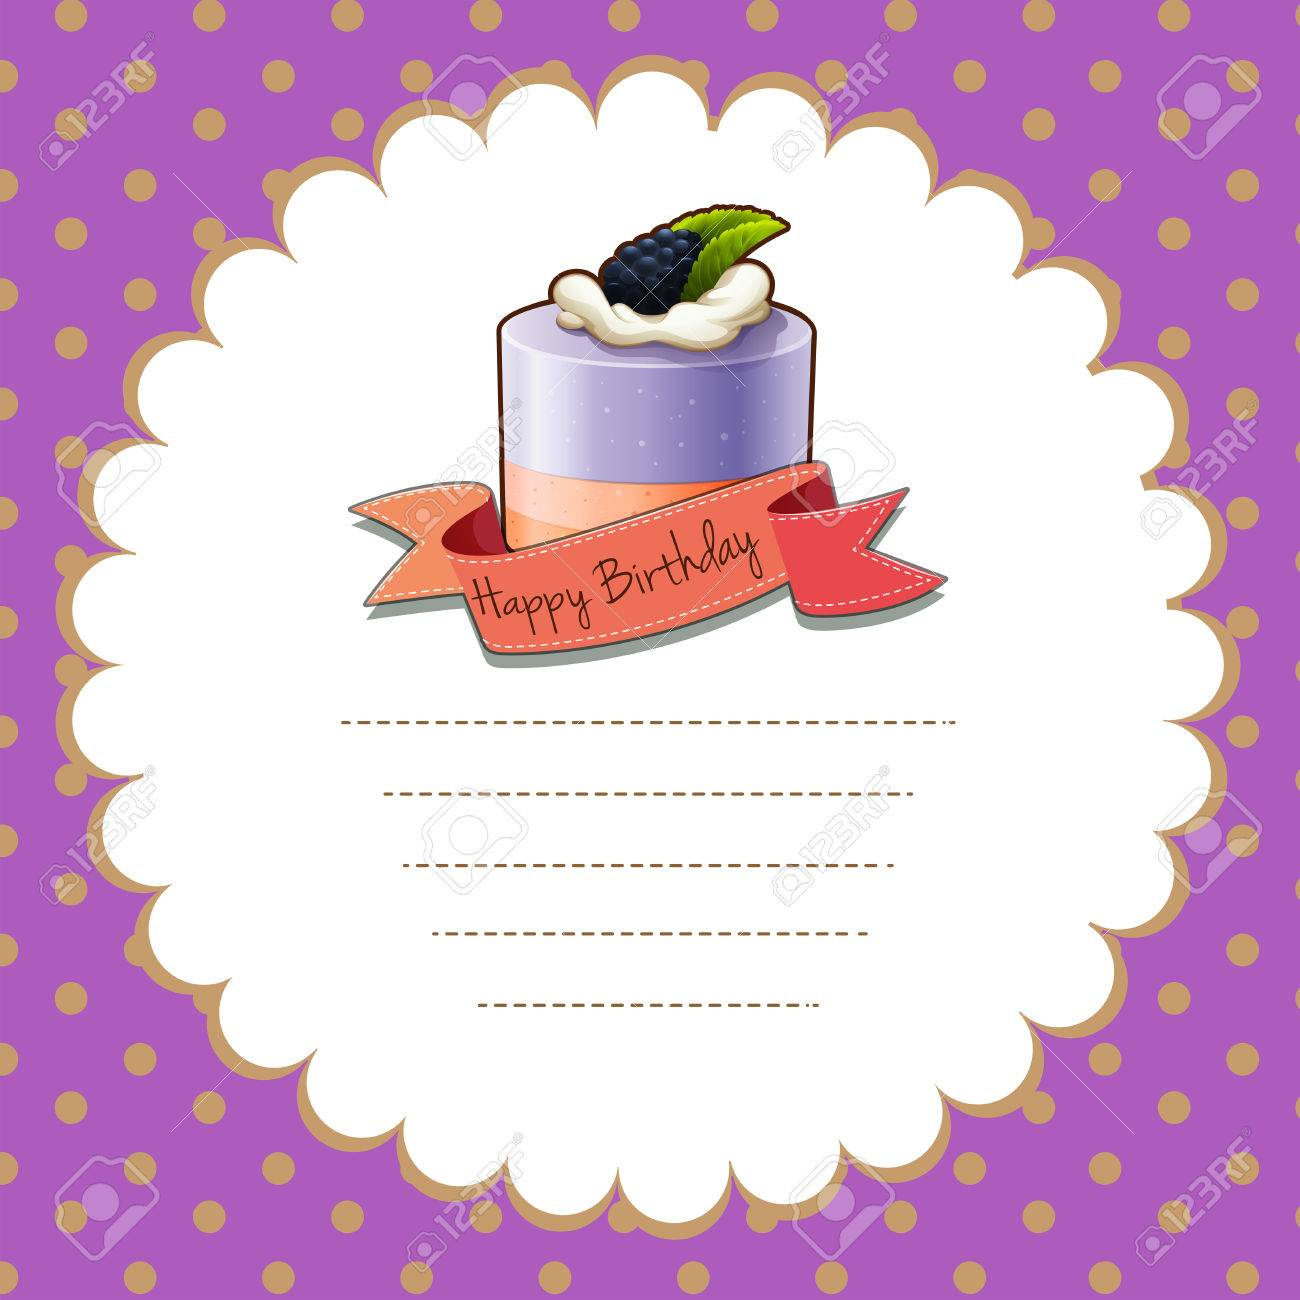 Border Design With Blueberry Cake Illustration Royalty Free Cliparts